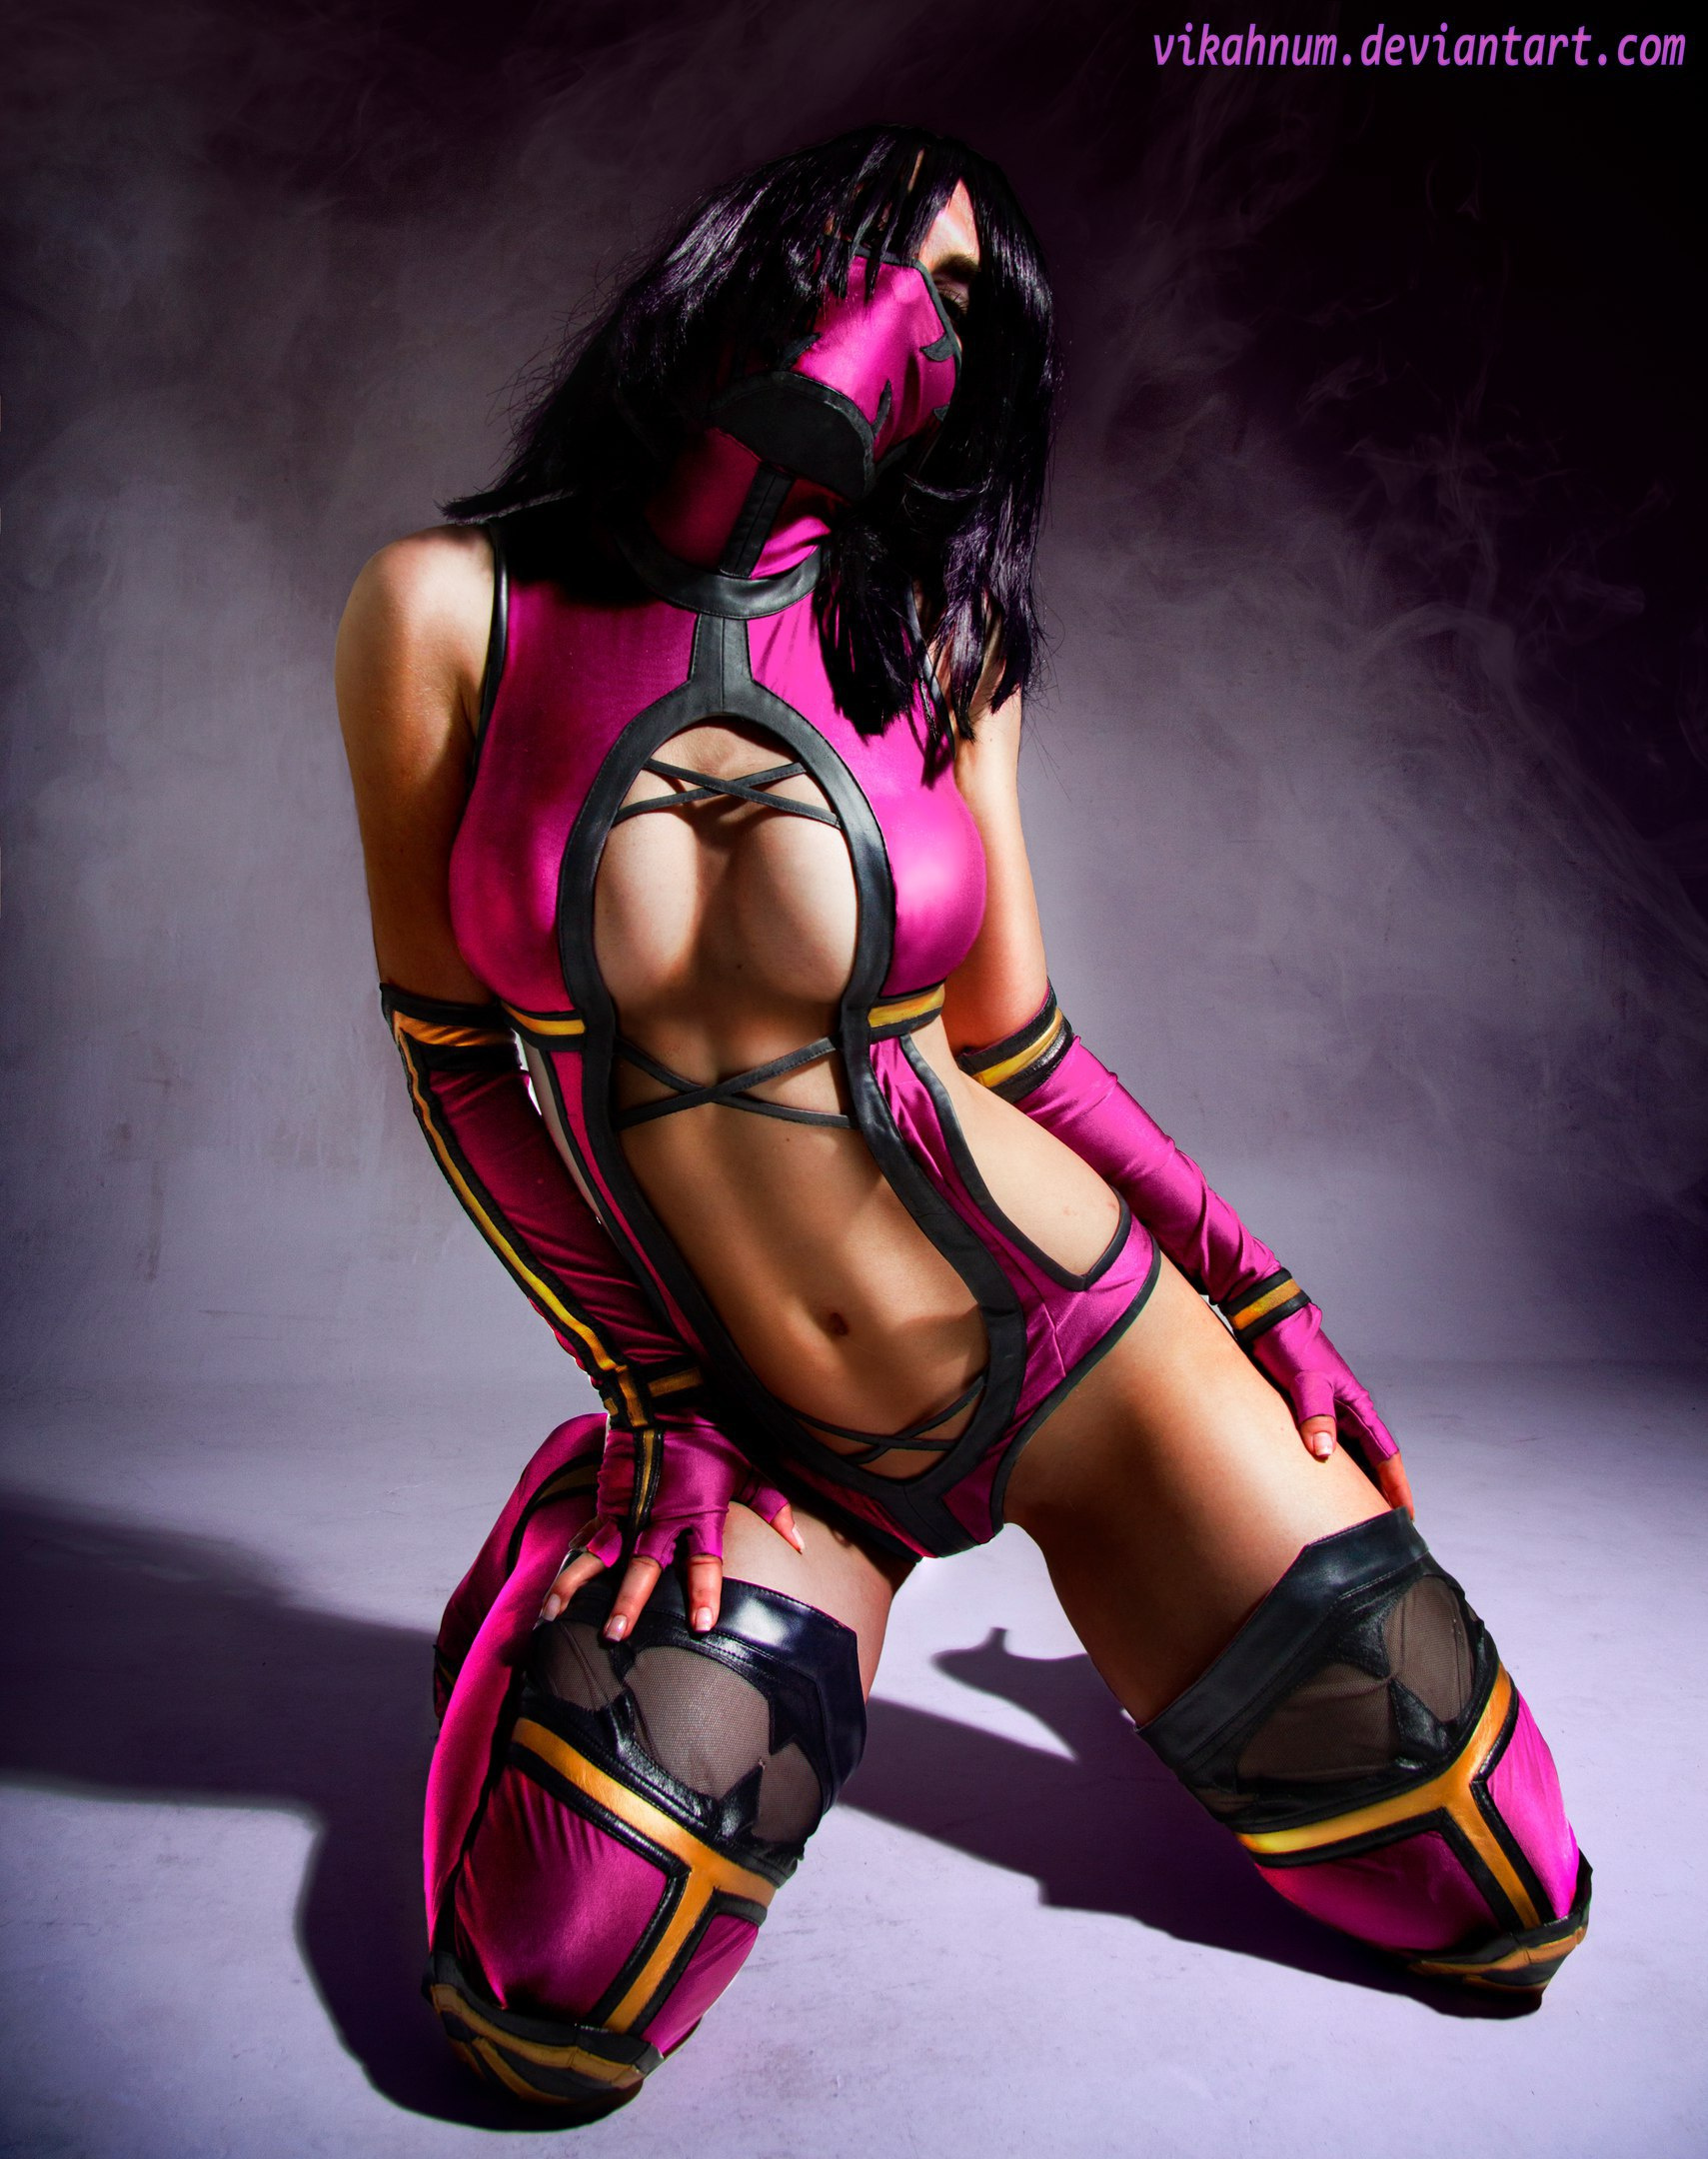 Mileena cosplay by Vikhanum